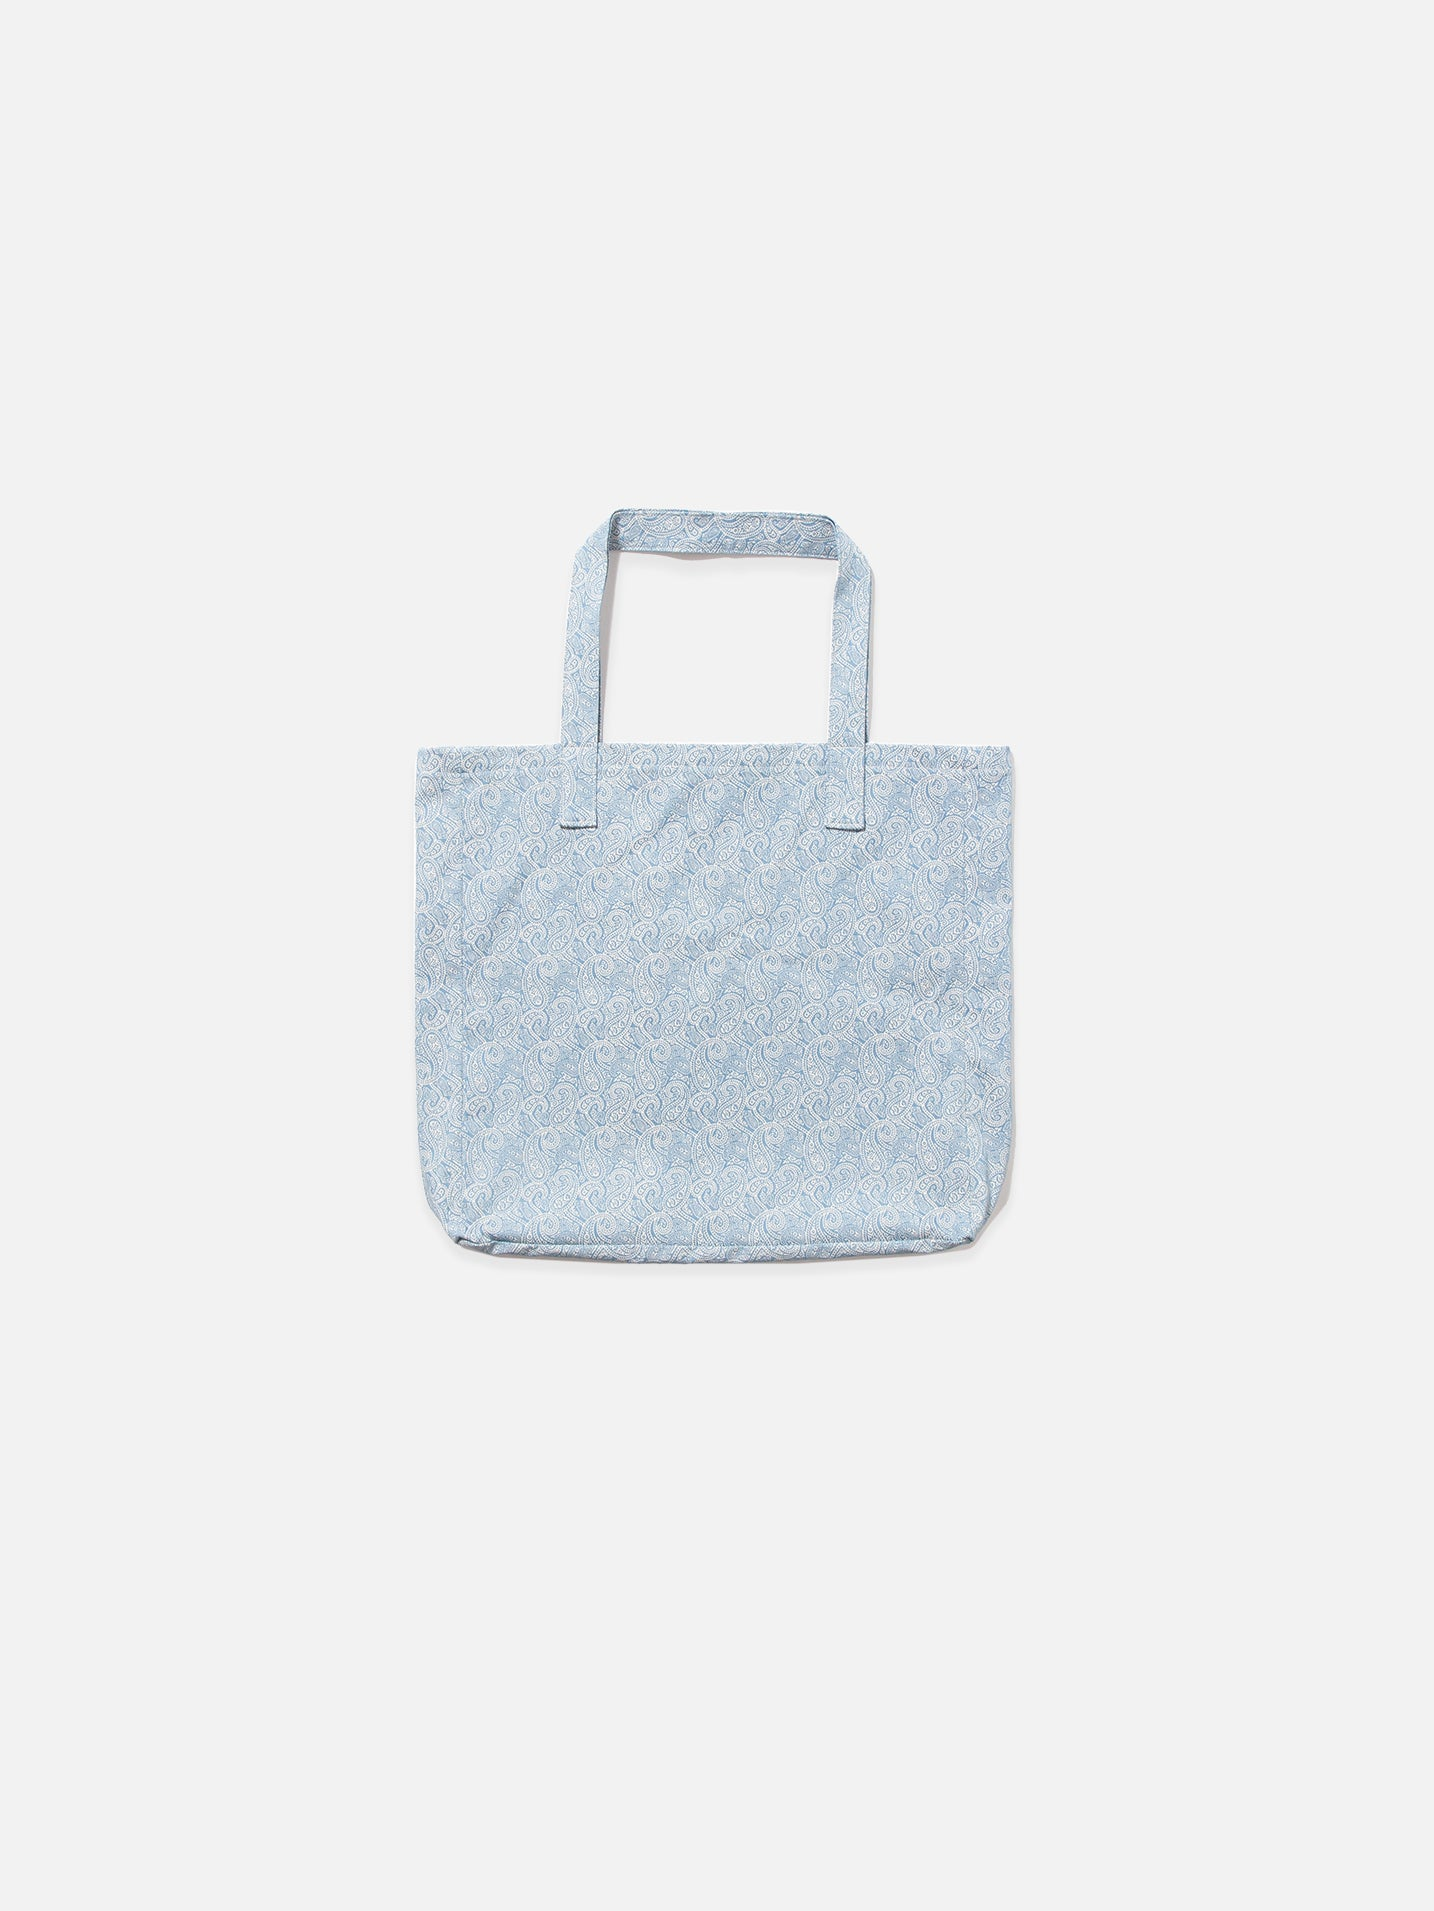 Chambray Denim Paisley Tote Bag